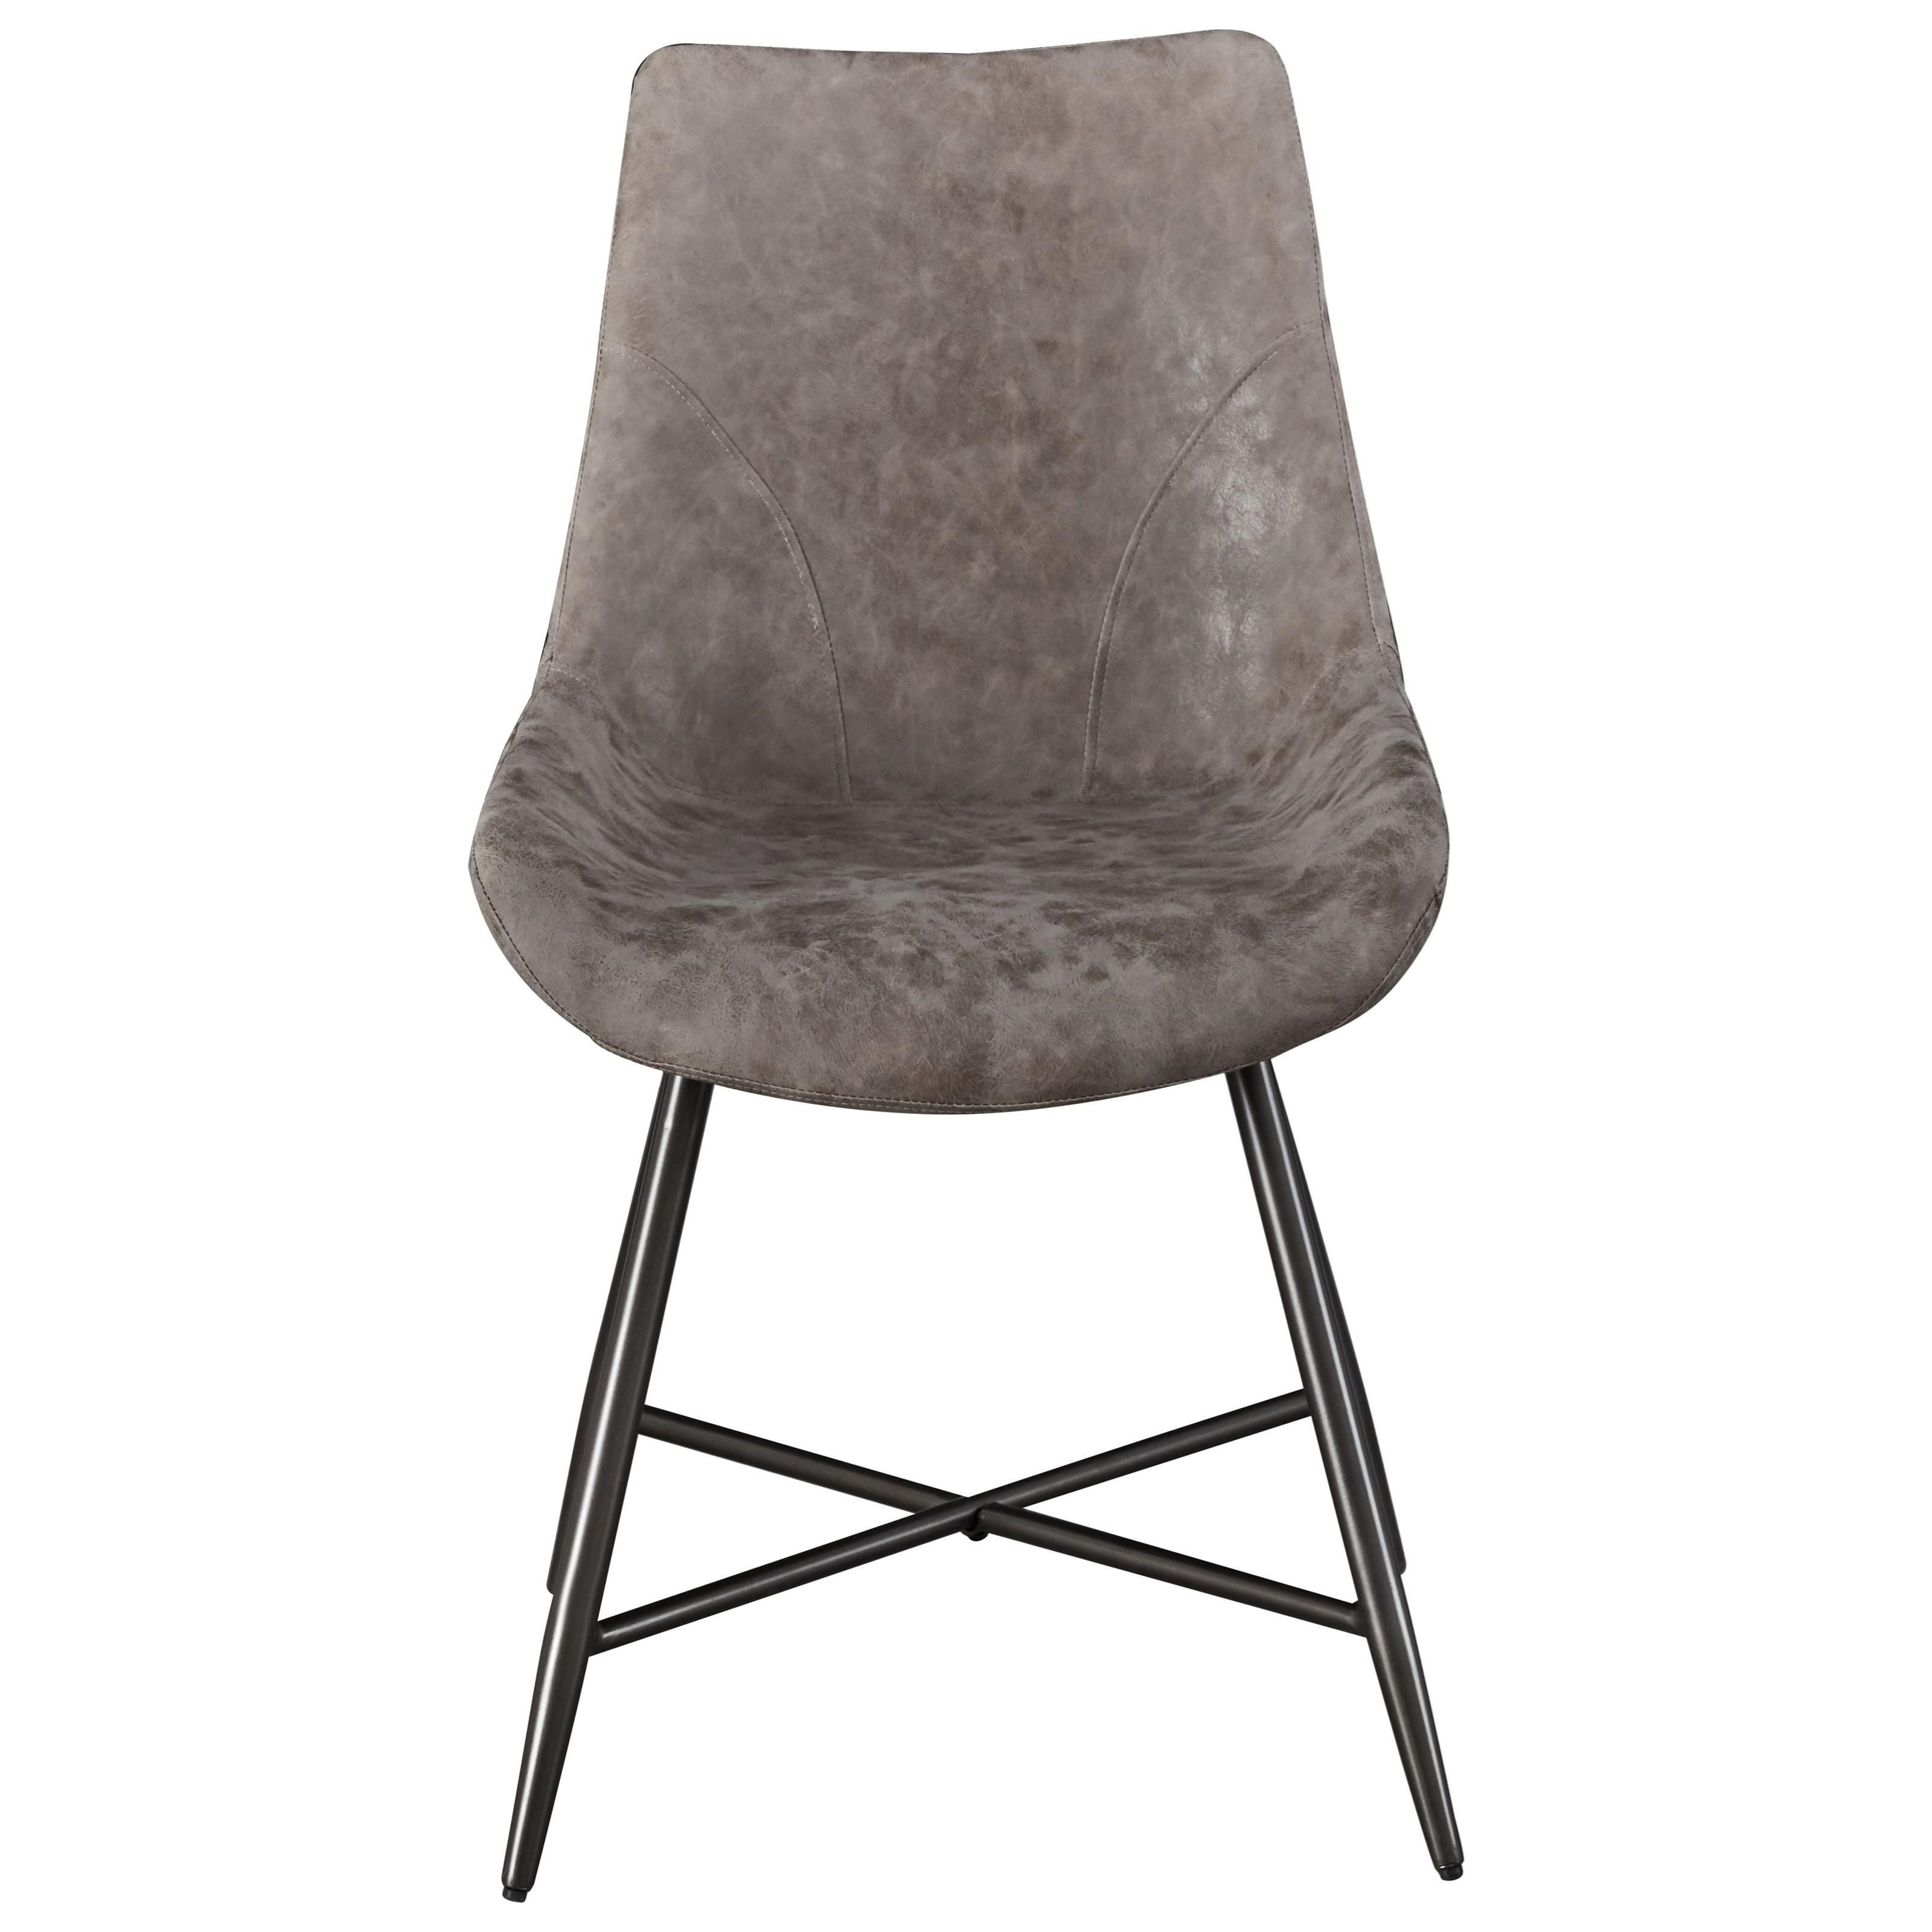 Ramona Faux Rawhide Side Chair by Steve Silver at Northeast Factory Direct